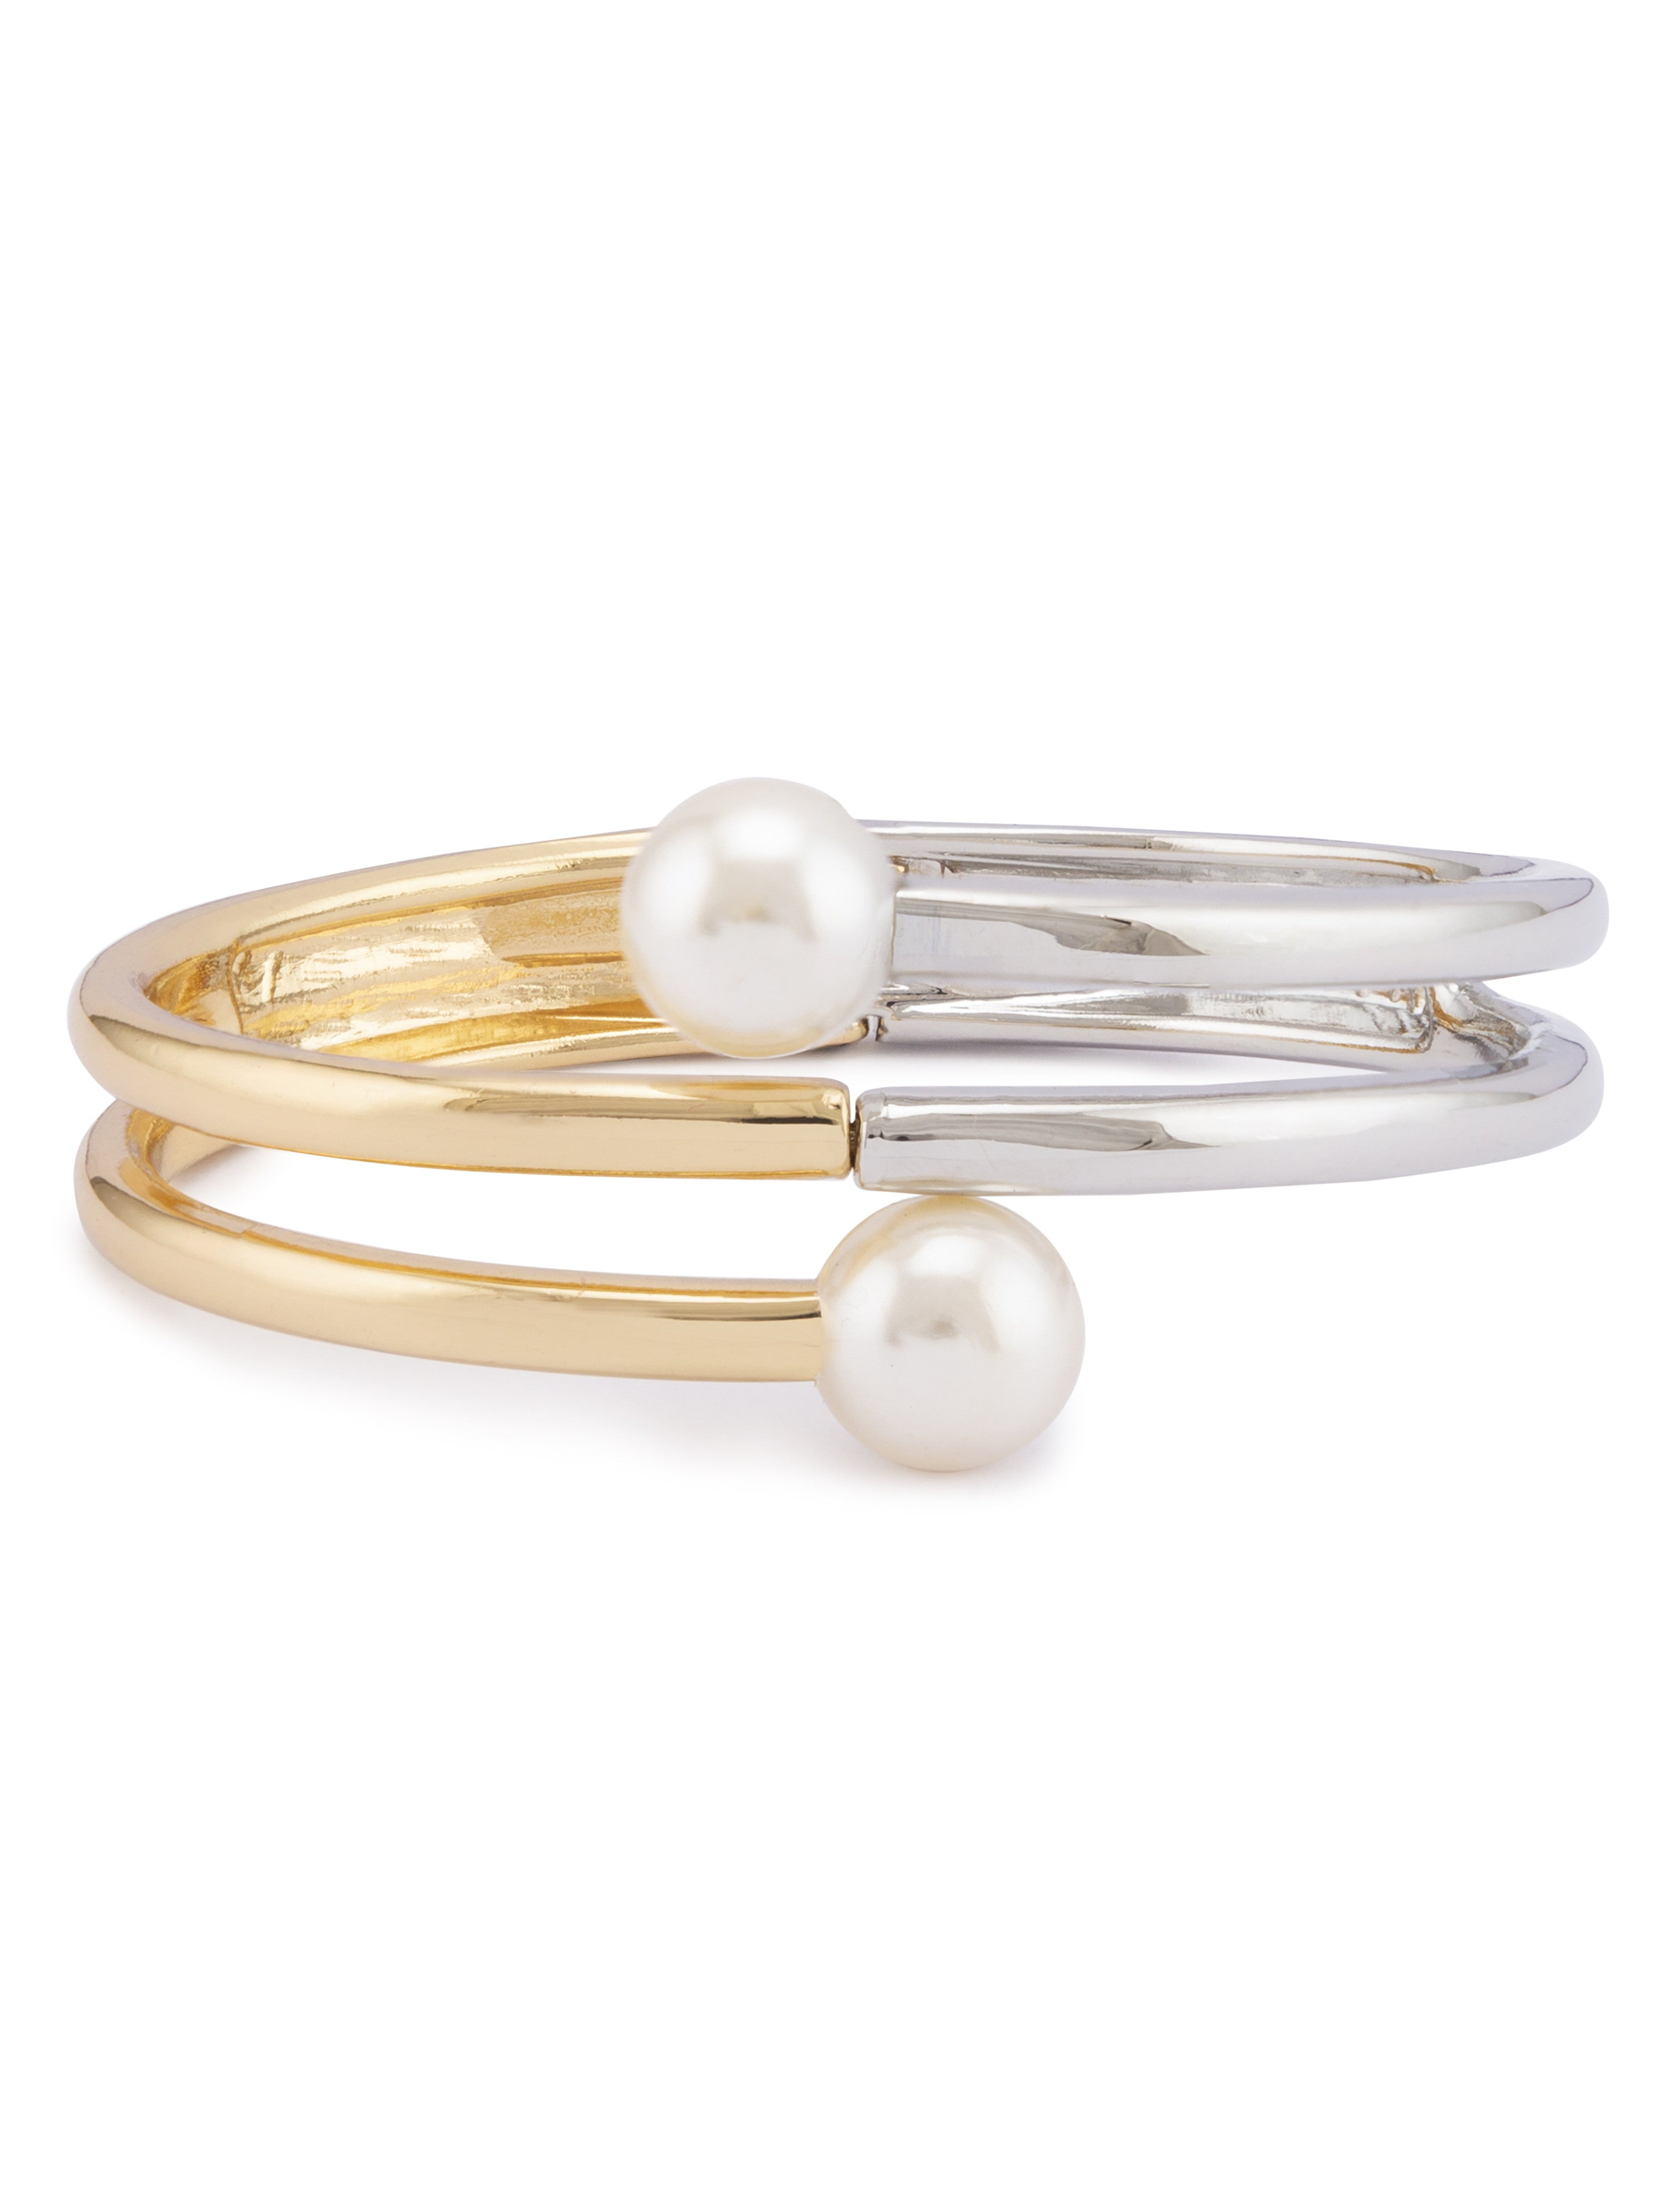 Pearl Silver Gold Bangle Bracelet-1